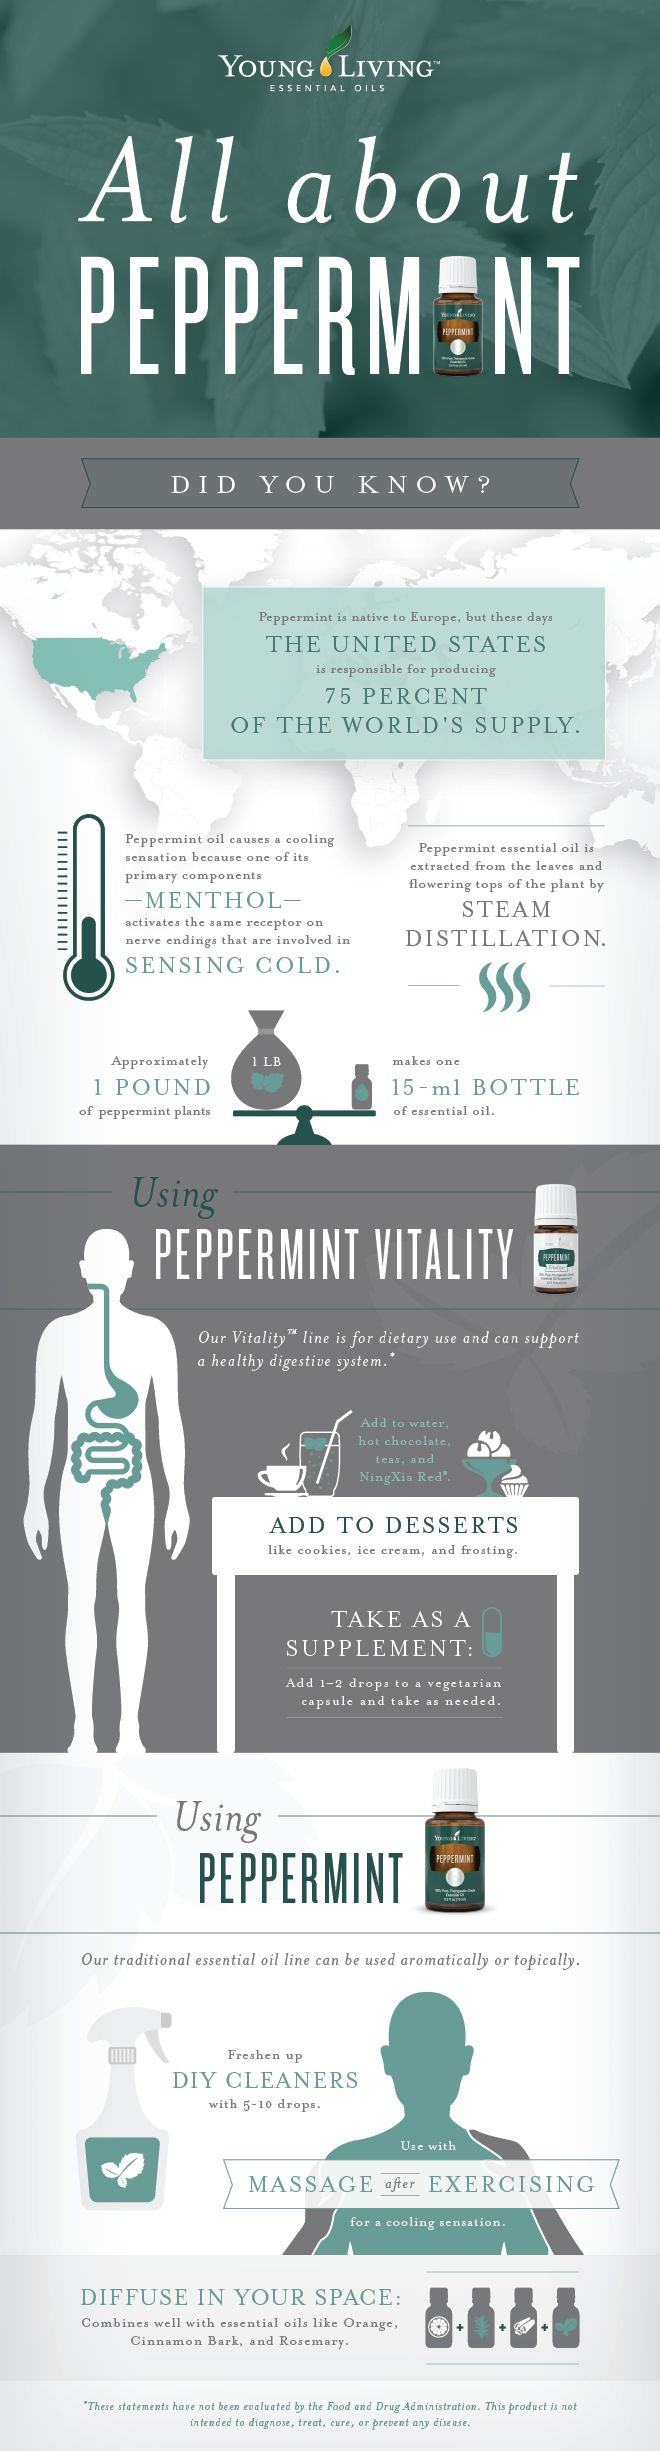 Young Living Peppermint Essential Oil and Peppermint Vitality Essential Oil - peppermint uses, peppermint oil